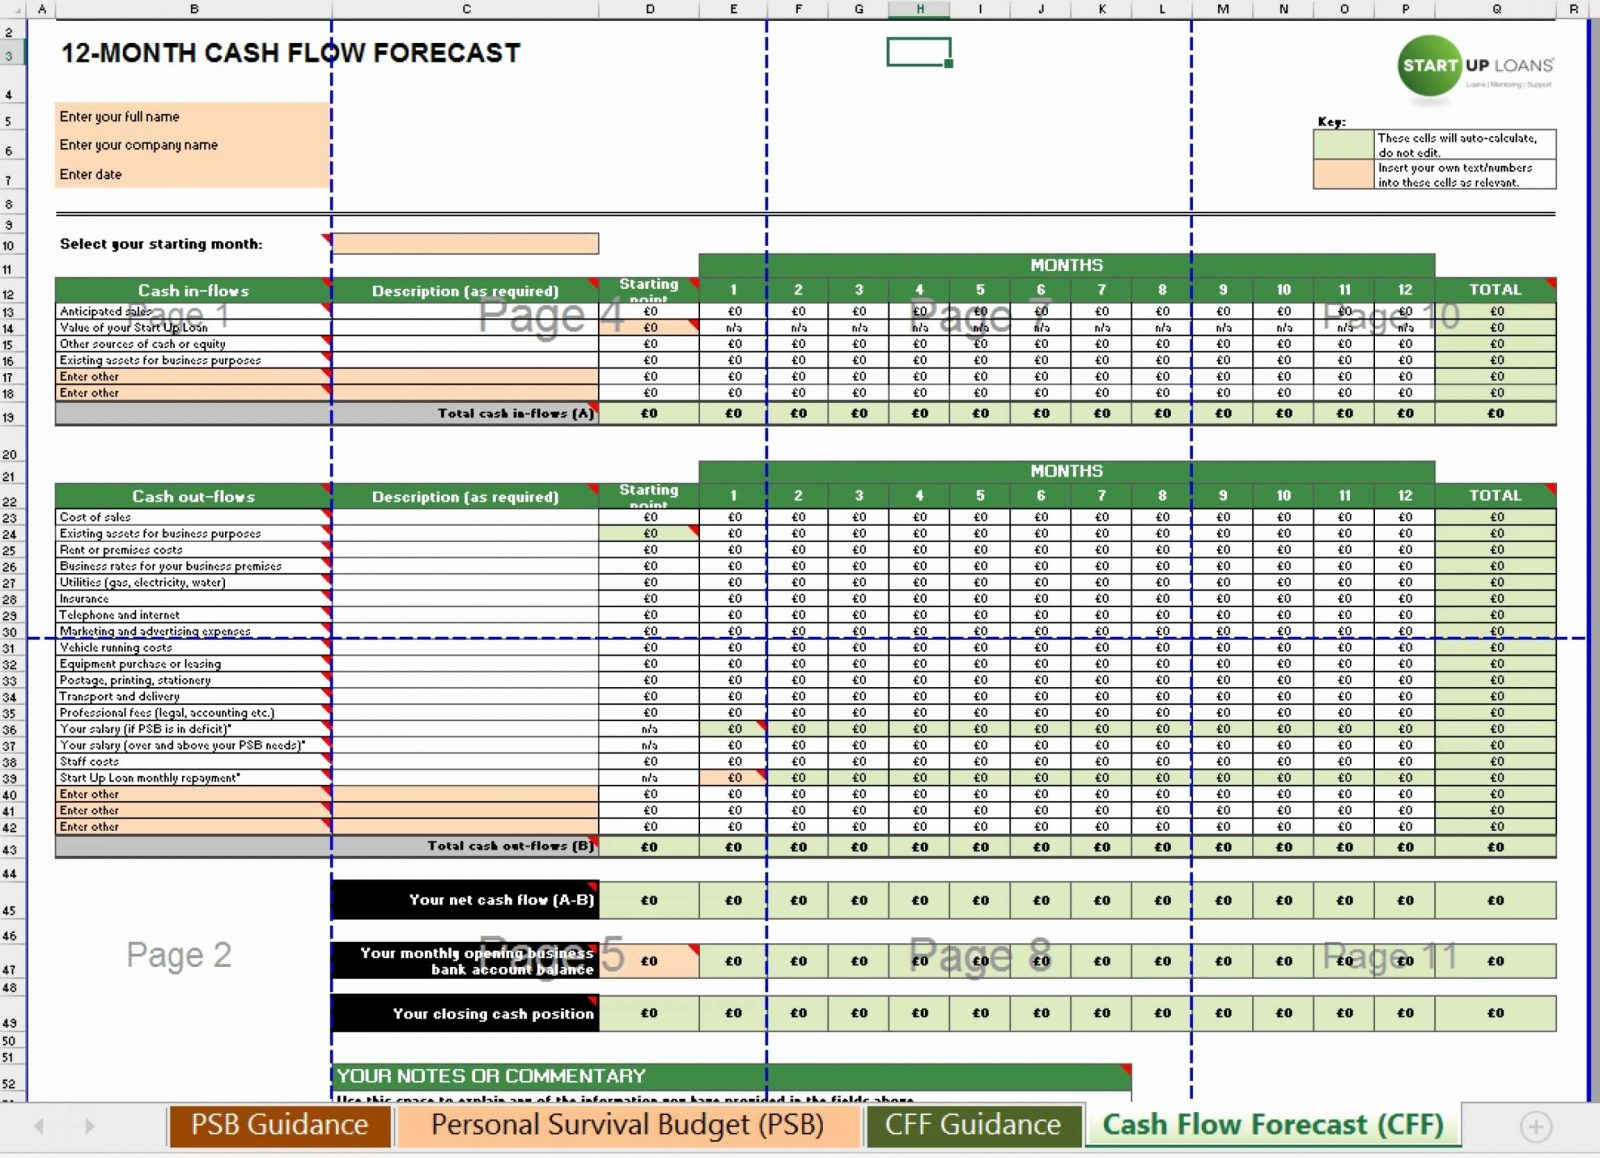 Spreadsheet Template Page 296 Spreadsheet Modelling Examples College Expenses Spreadsheet